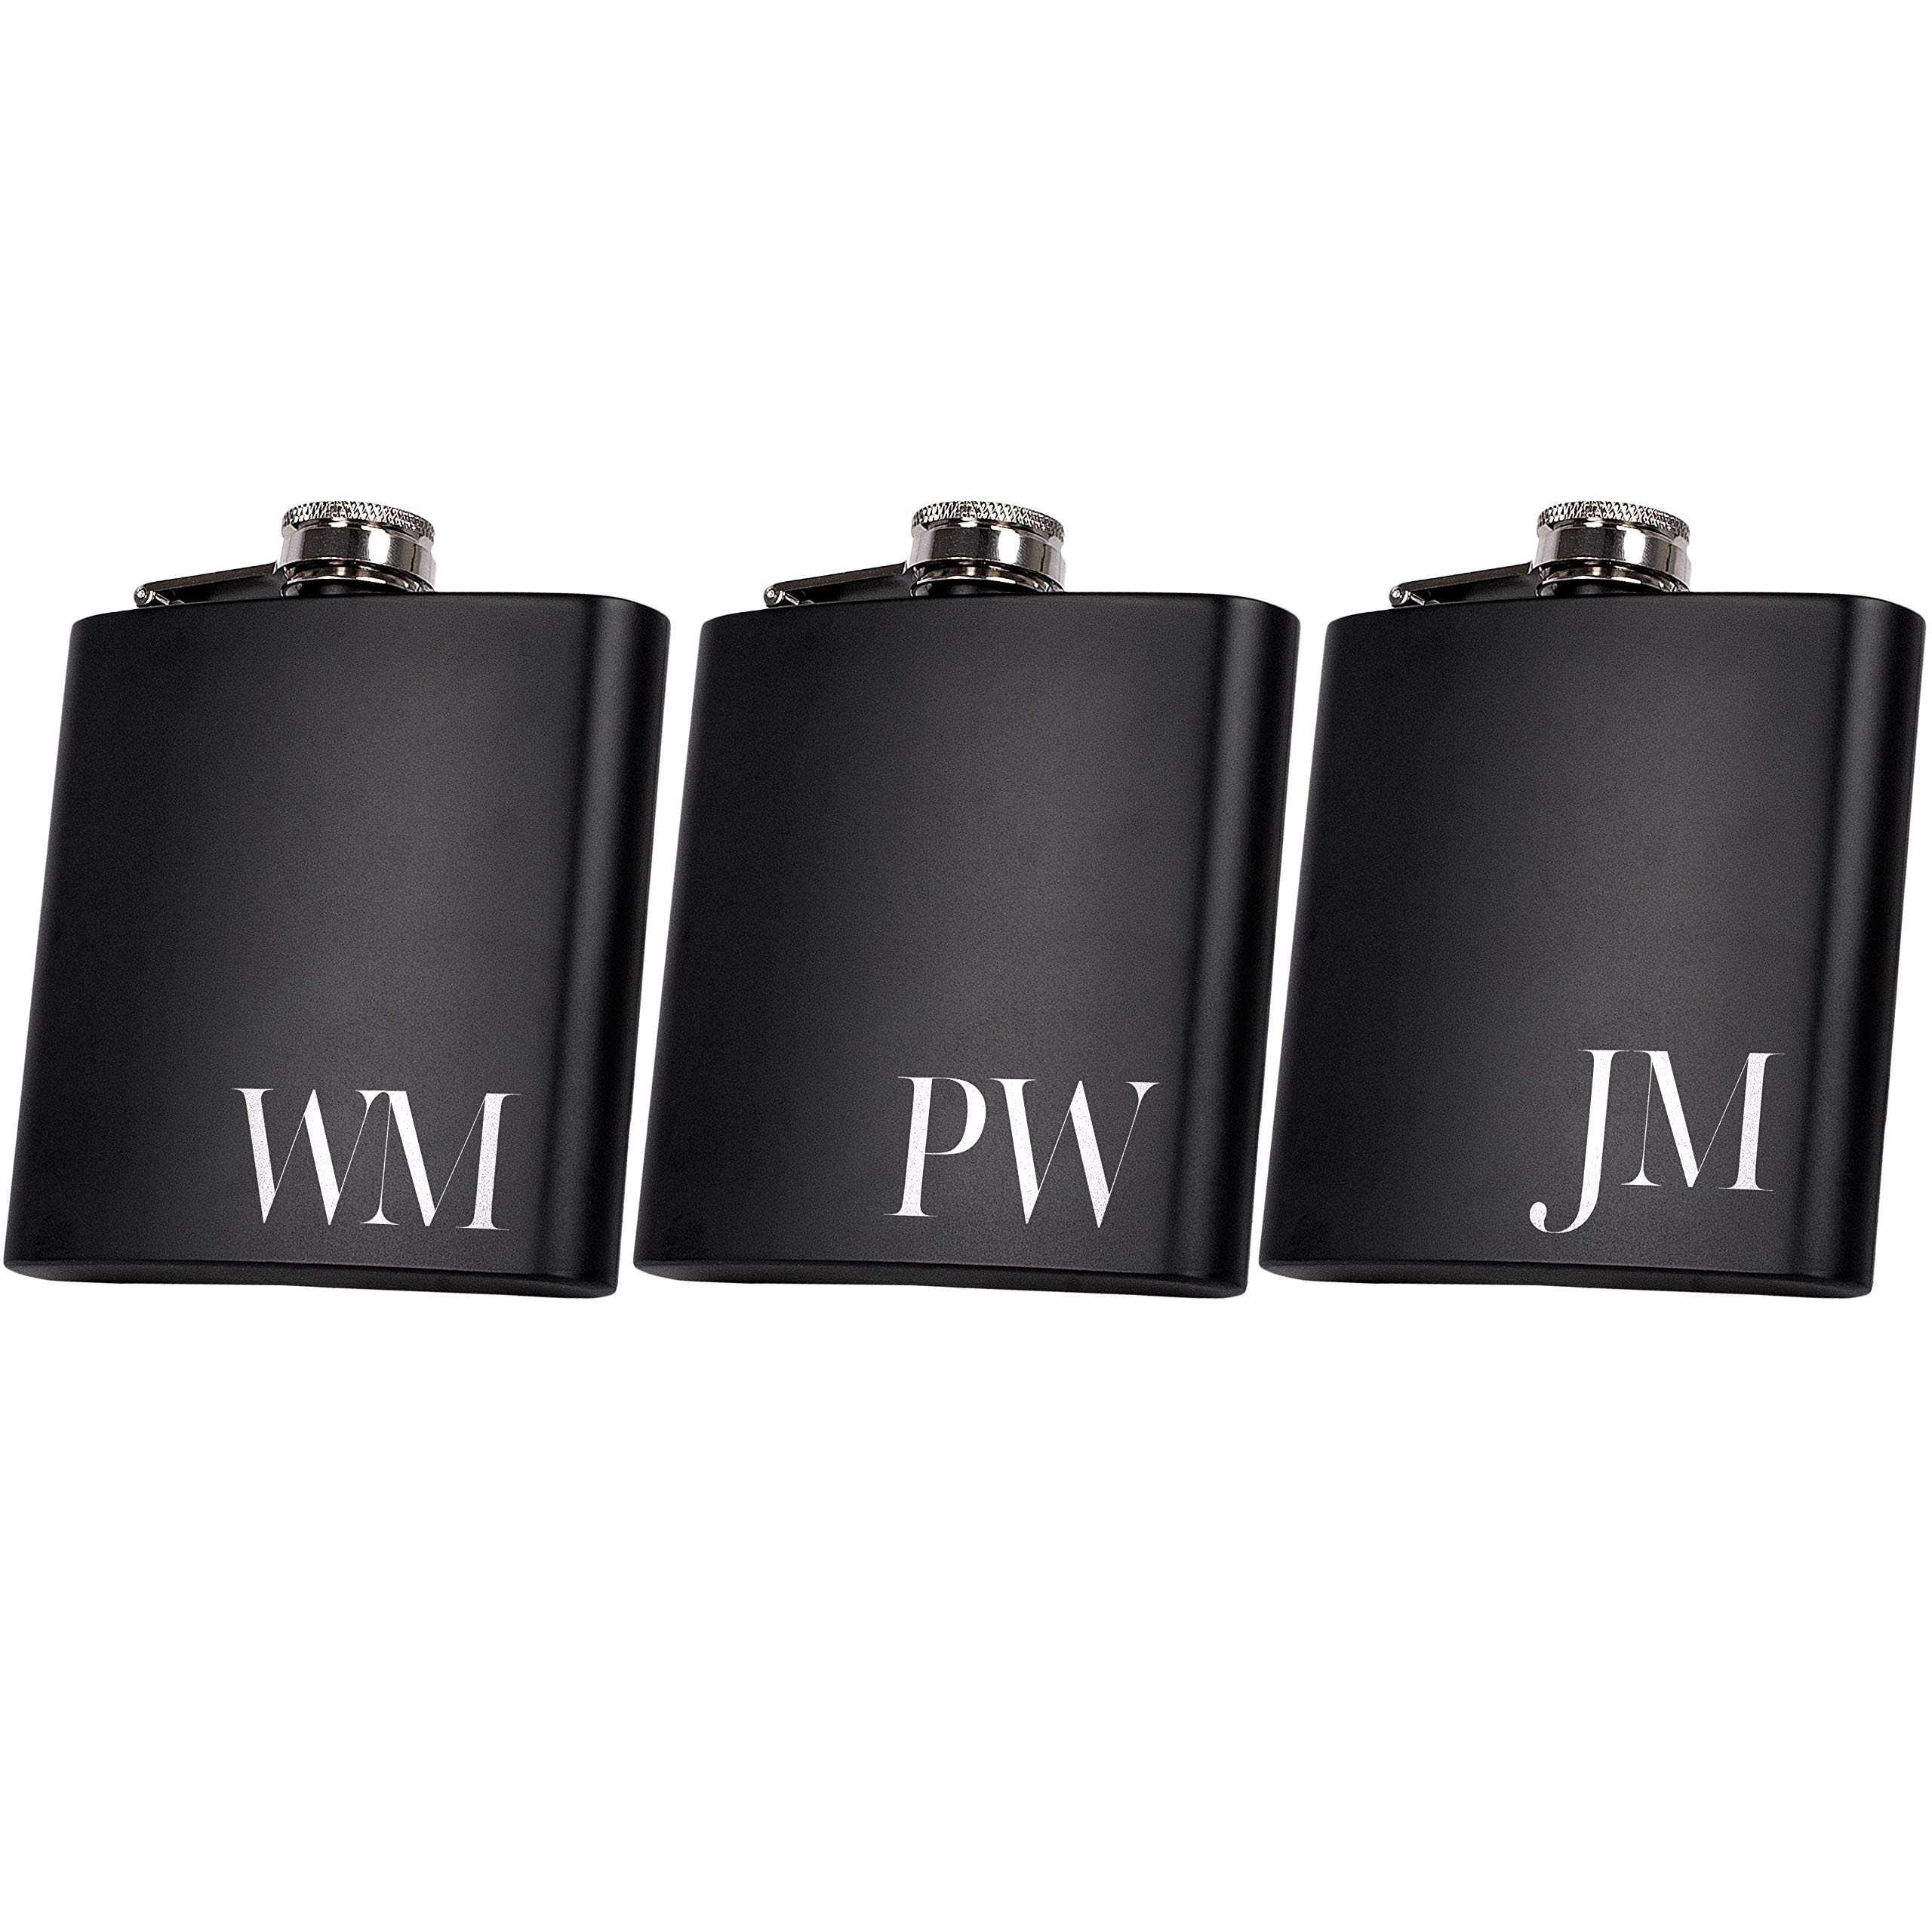 Set of 6, Set of 3, Single - Personalized Flask, Groomsmen Gift, Customized Groomsman Flasks, Wedding Favors, Matte Black, Design 2 (3) by United Craft Supplies